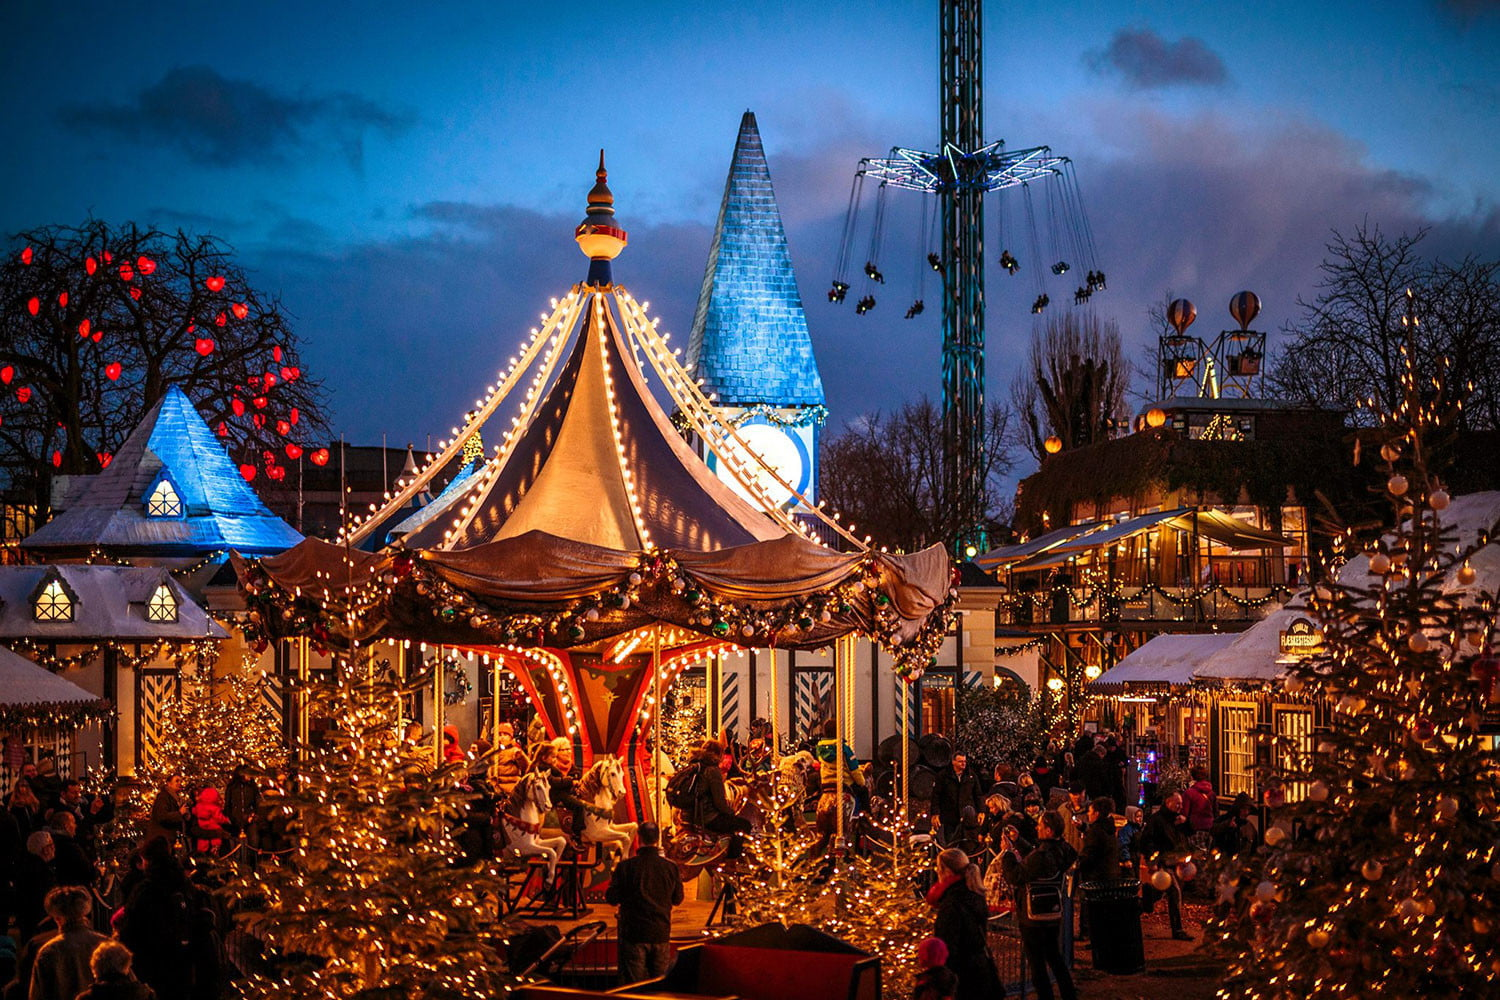 Tivoli Gardens Price Of Rides 10 Extravagant Holiday Light Displays That Even Tim Taylor